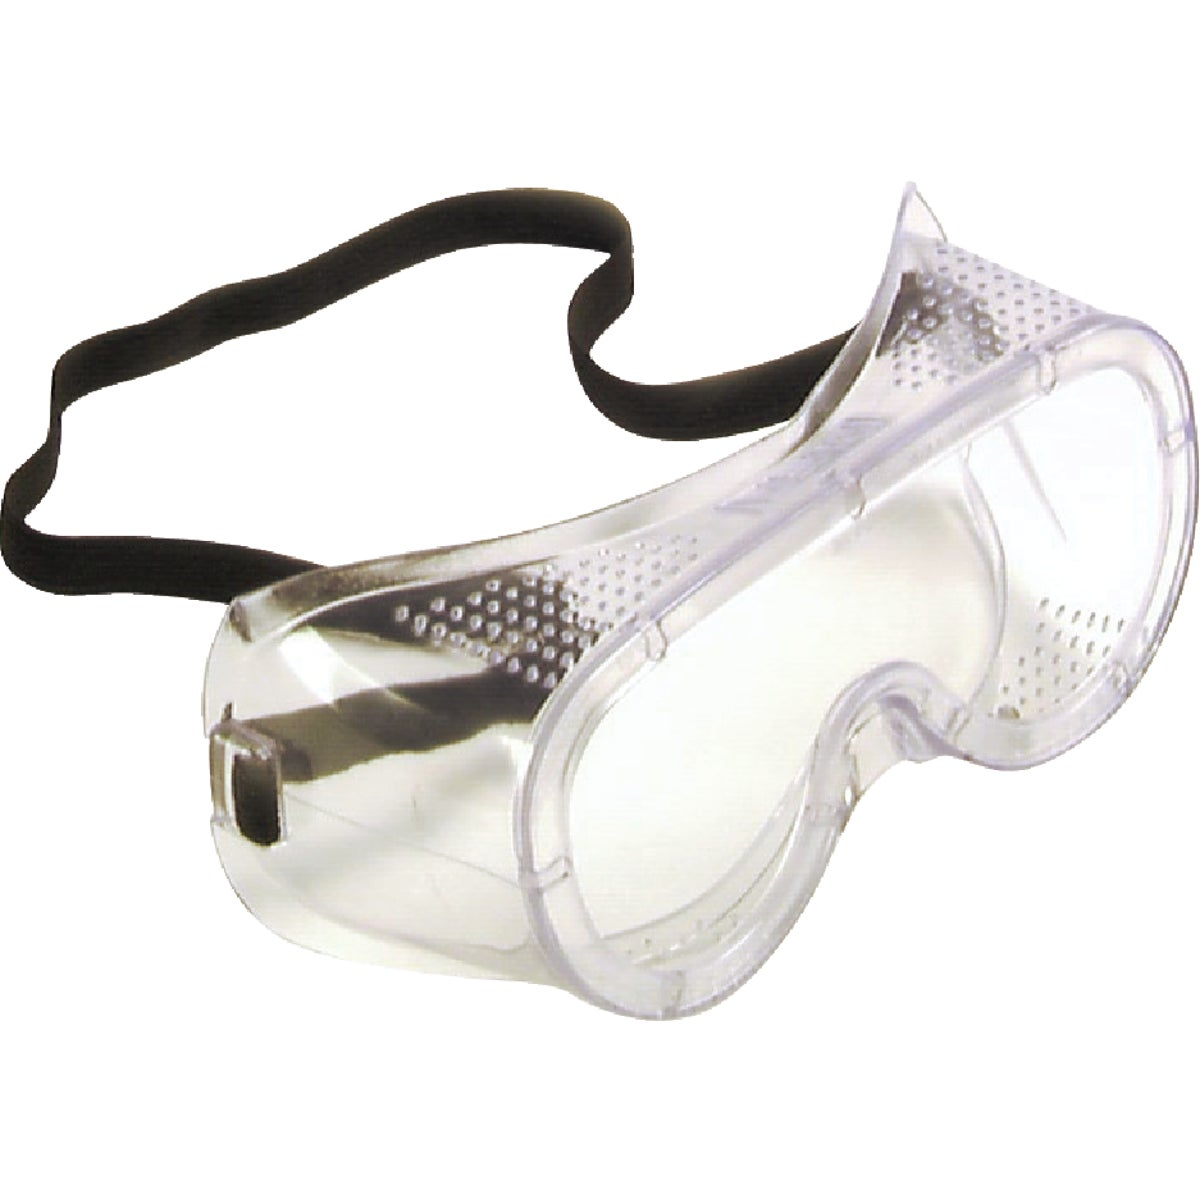 SAFETY GOGGLES - 817697 by Msa Safety